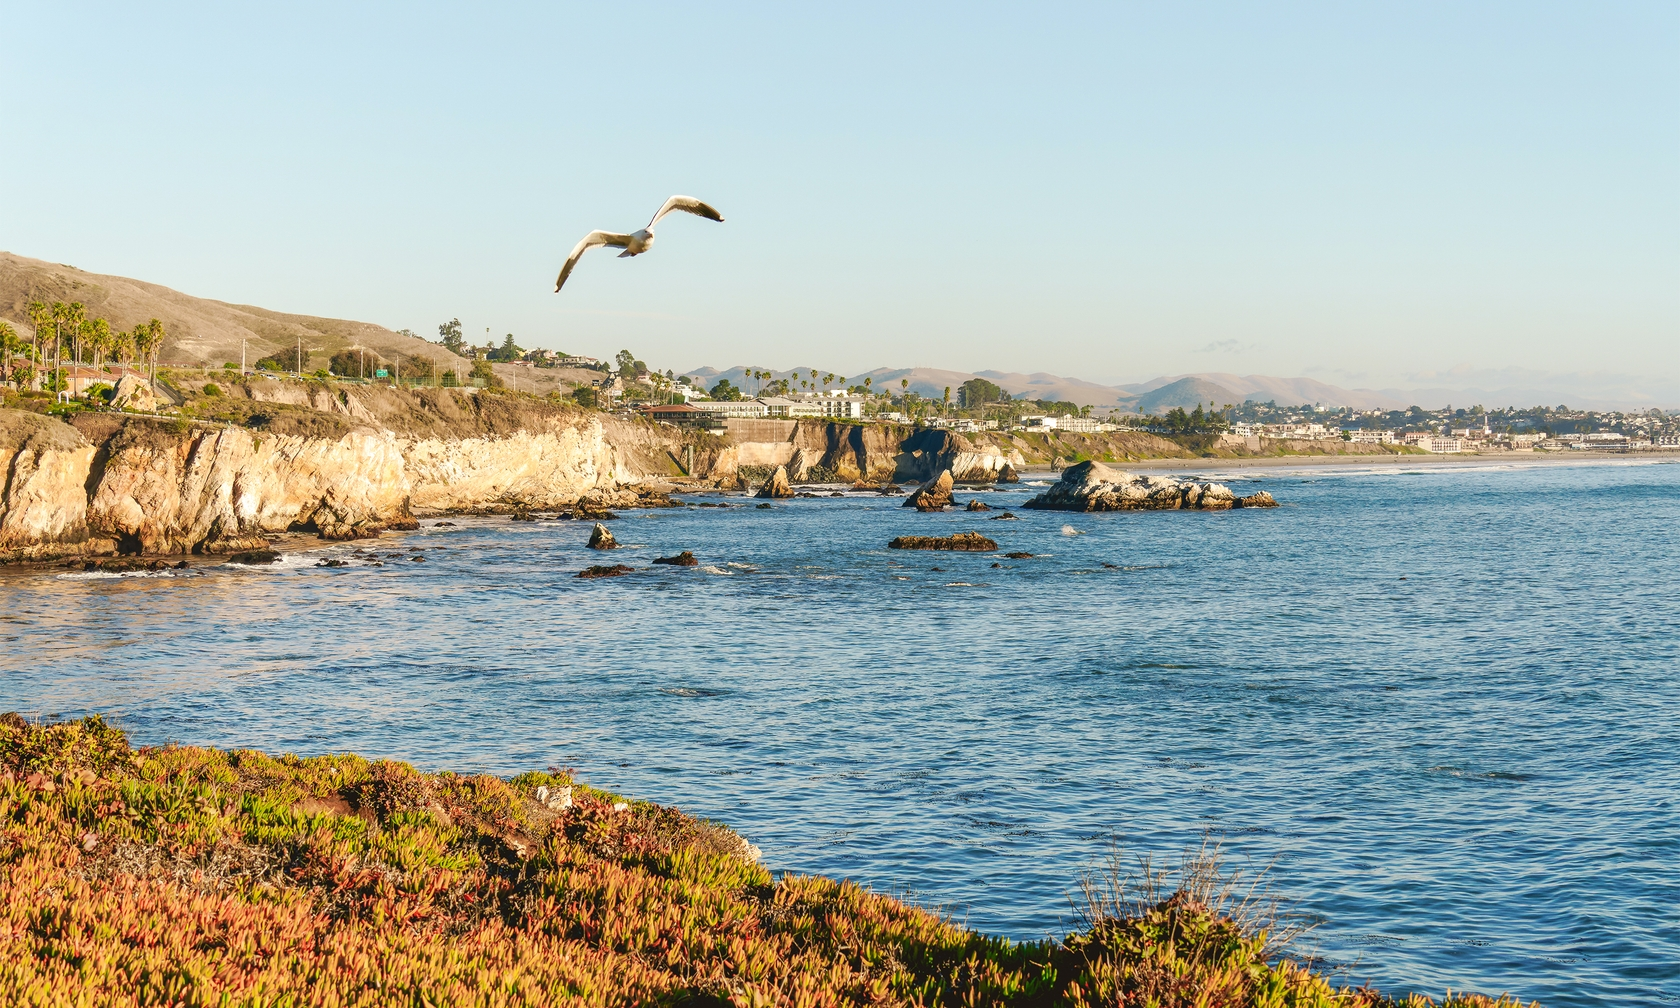 Vacation rental houses in Pismo Beach